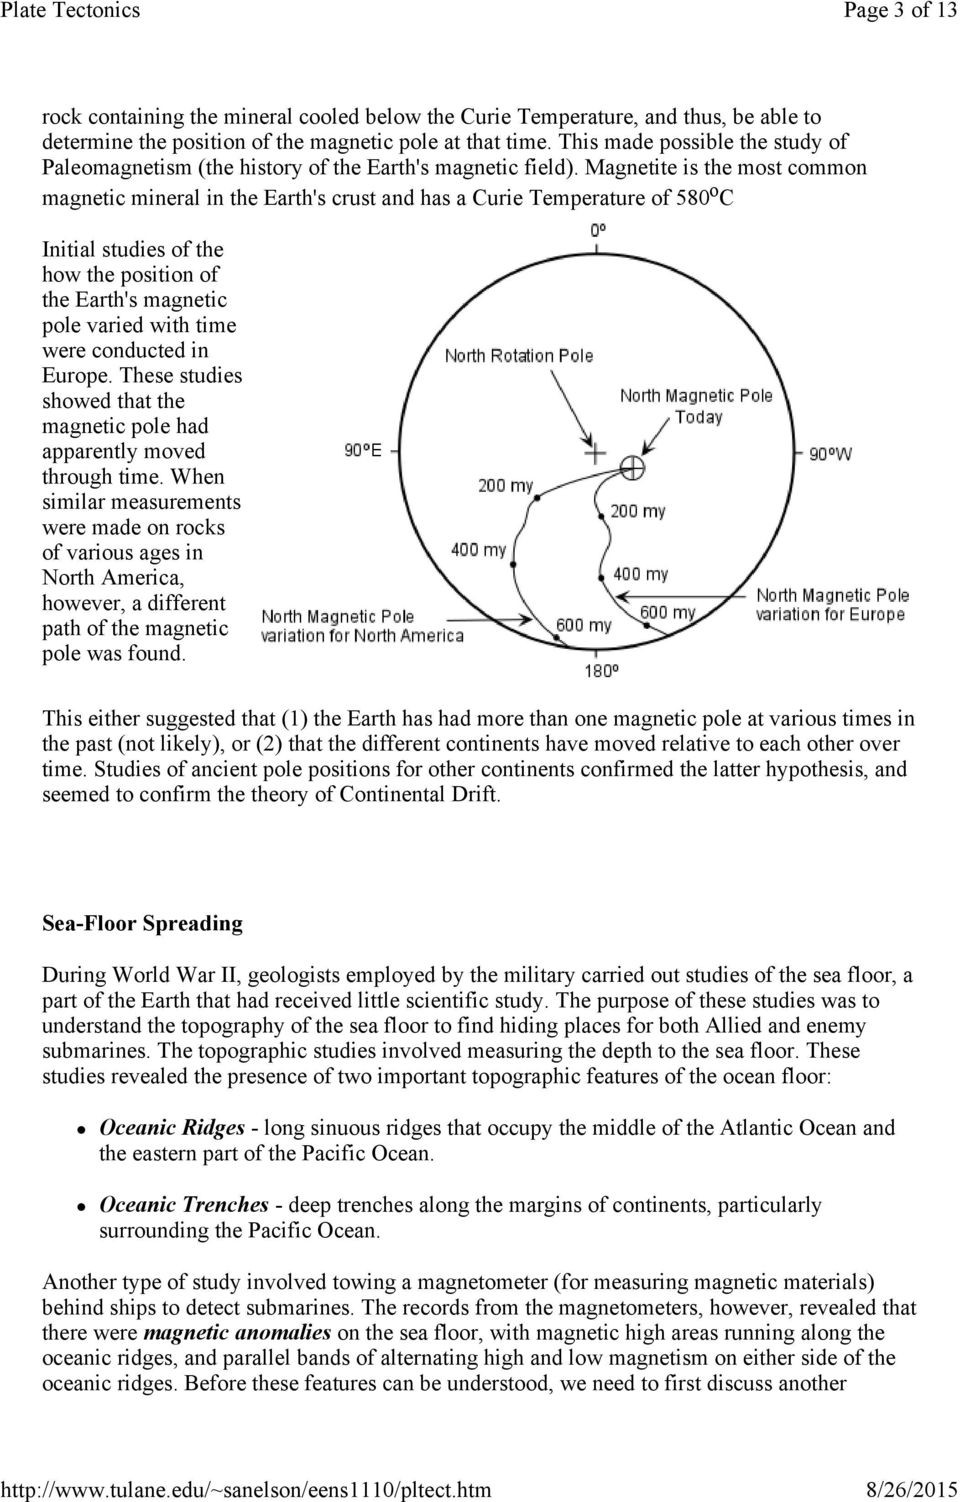 Sea Floor Spreading Worksheet Continental Drift Sea Floor Spreading and Plate Tectonics